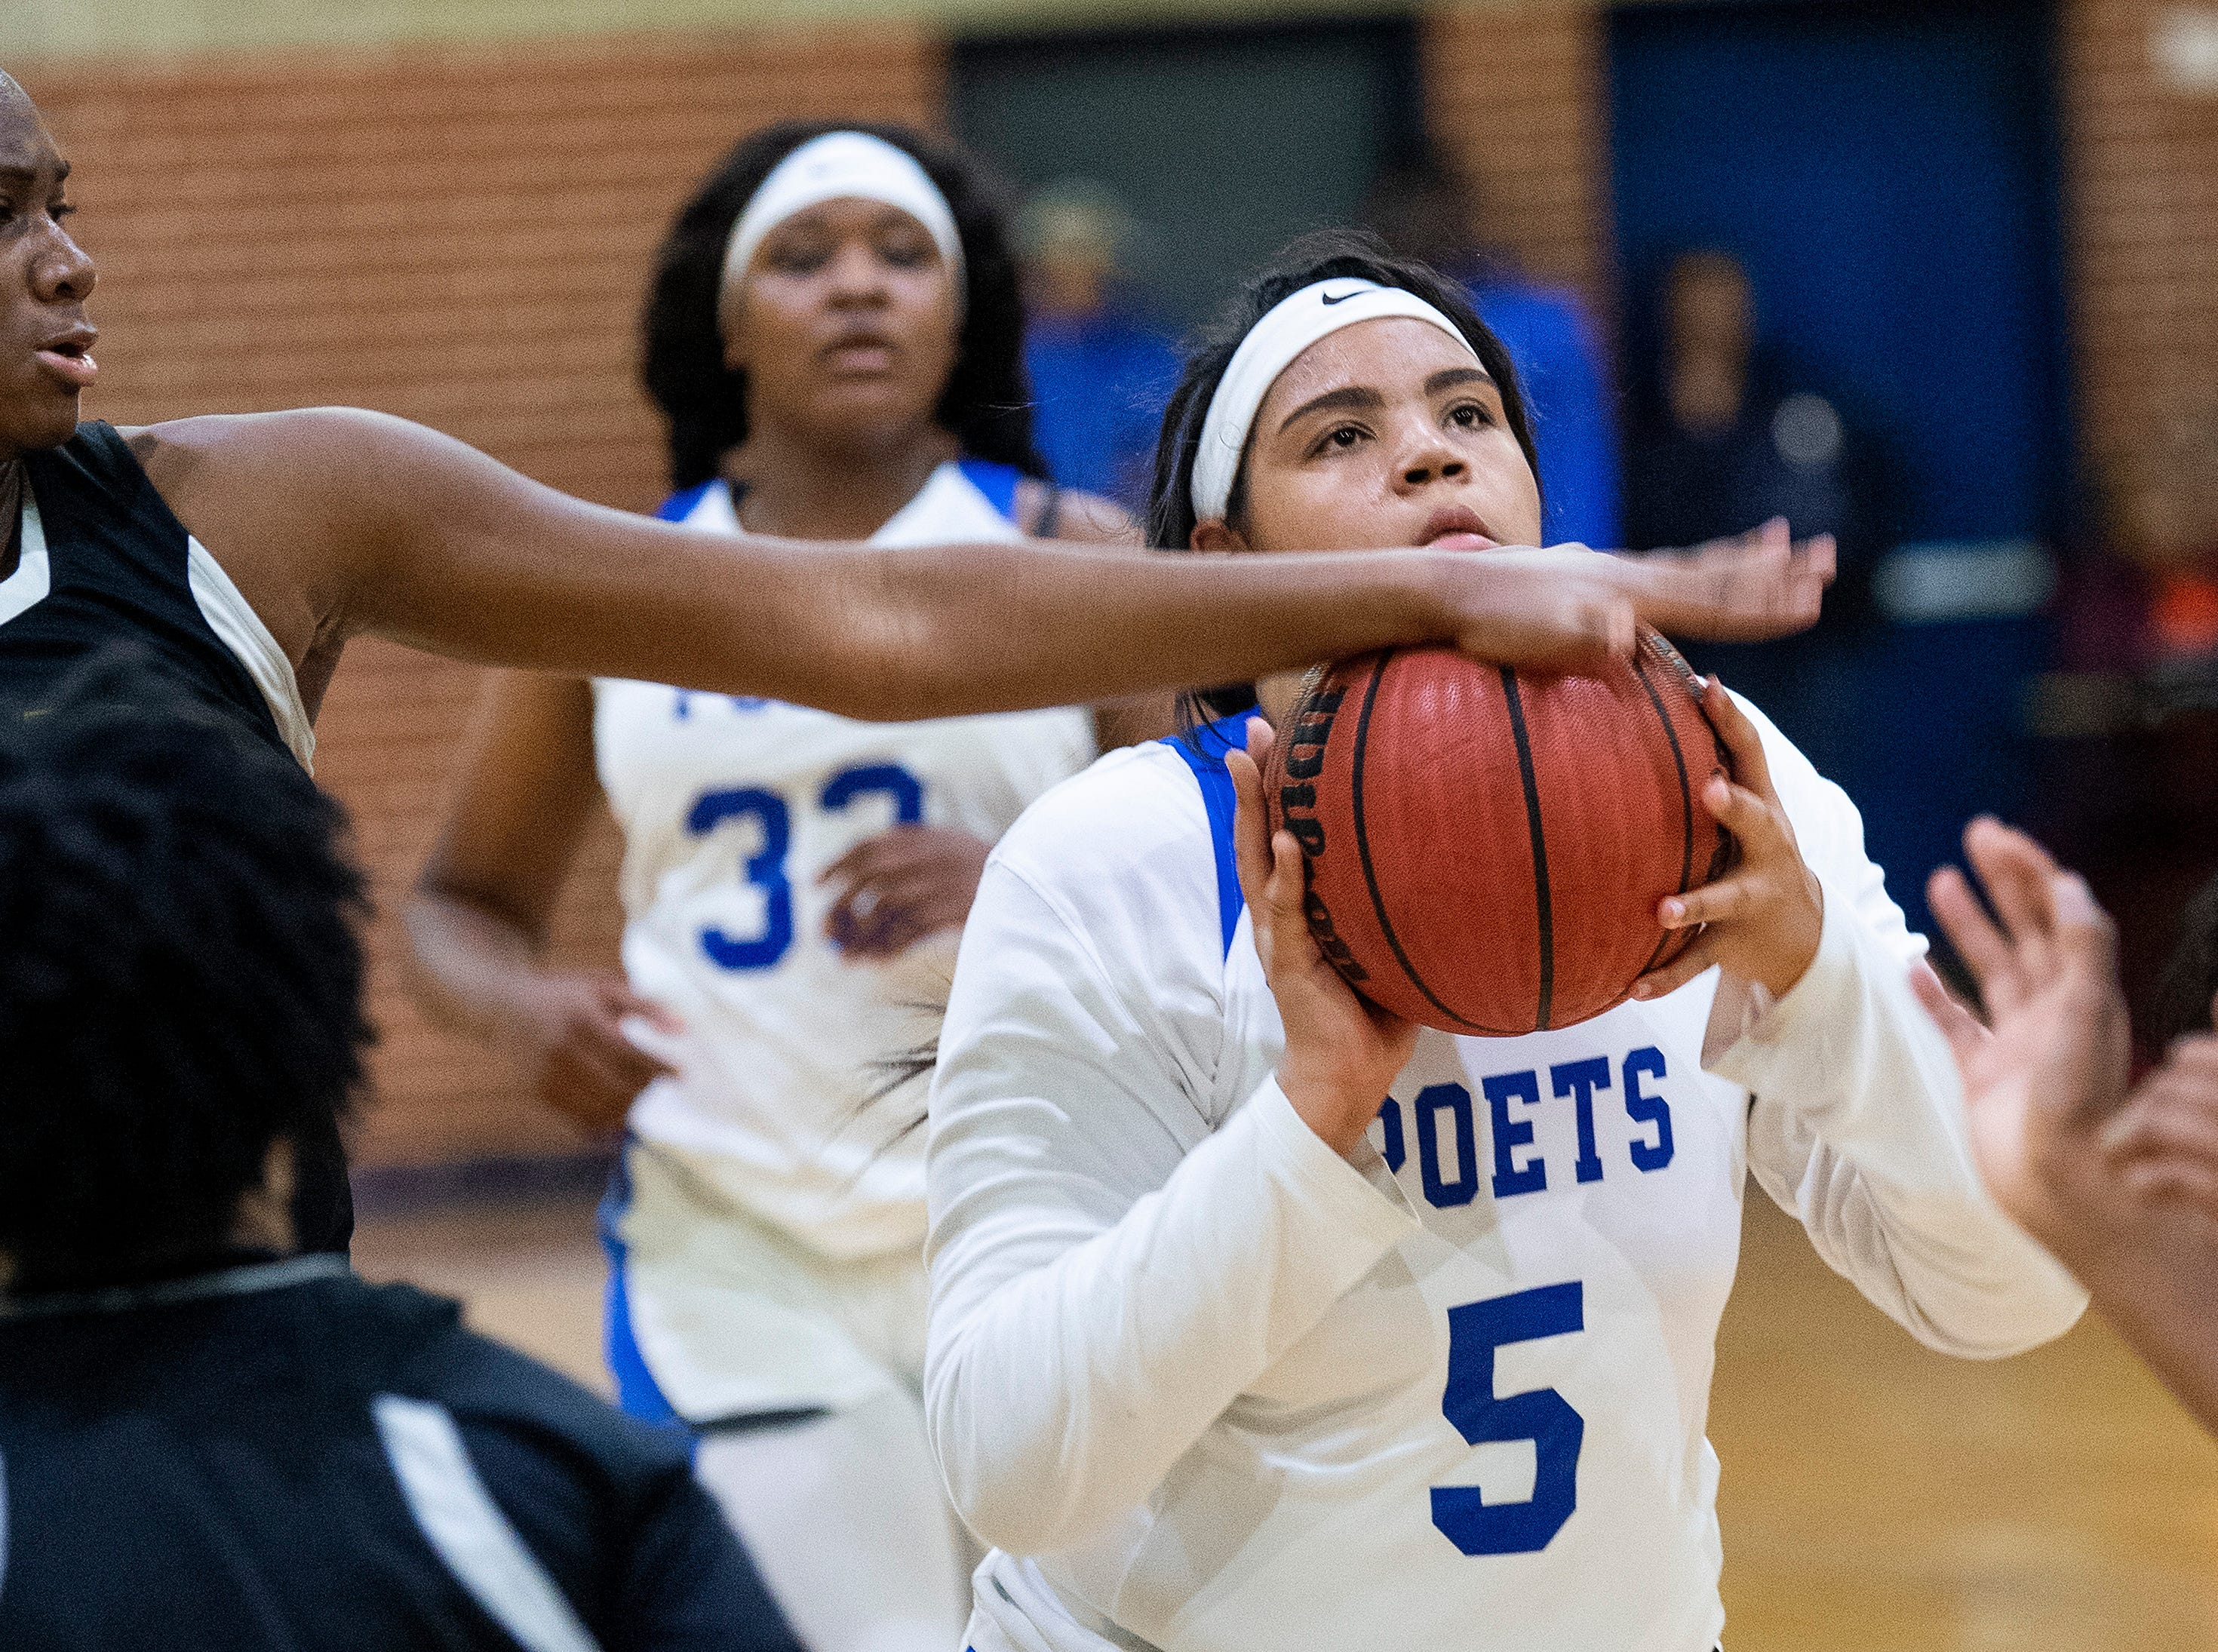 Lanier's Sakoya Knight (5) has a shot blocked by Carver's Bre anna Rhodes (10) at the Lanier campus in Montgomery, Ala., on Friday January 11, 2019.